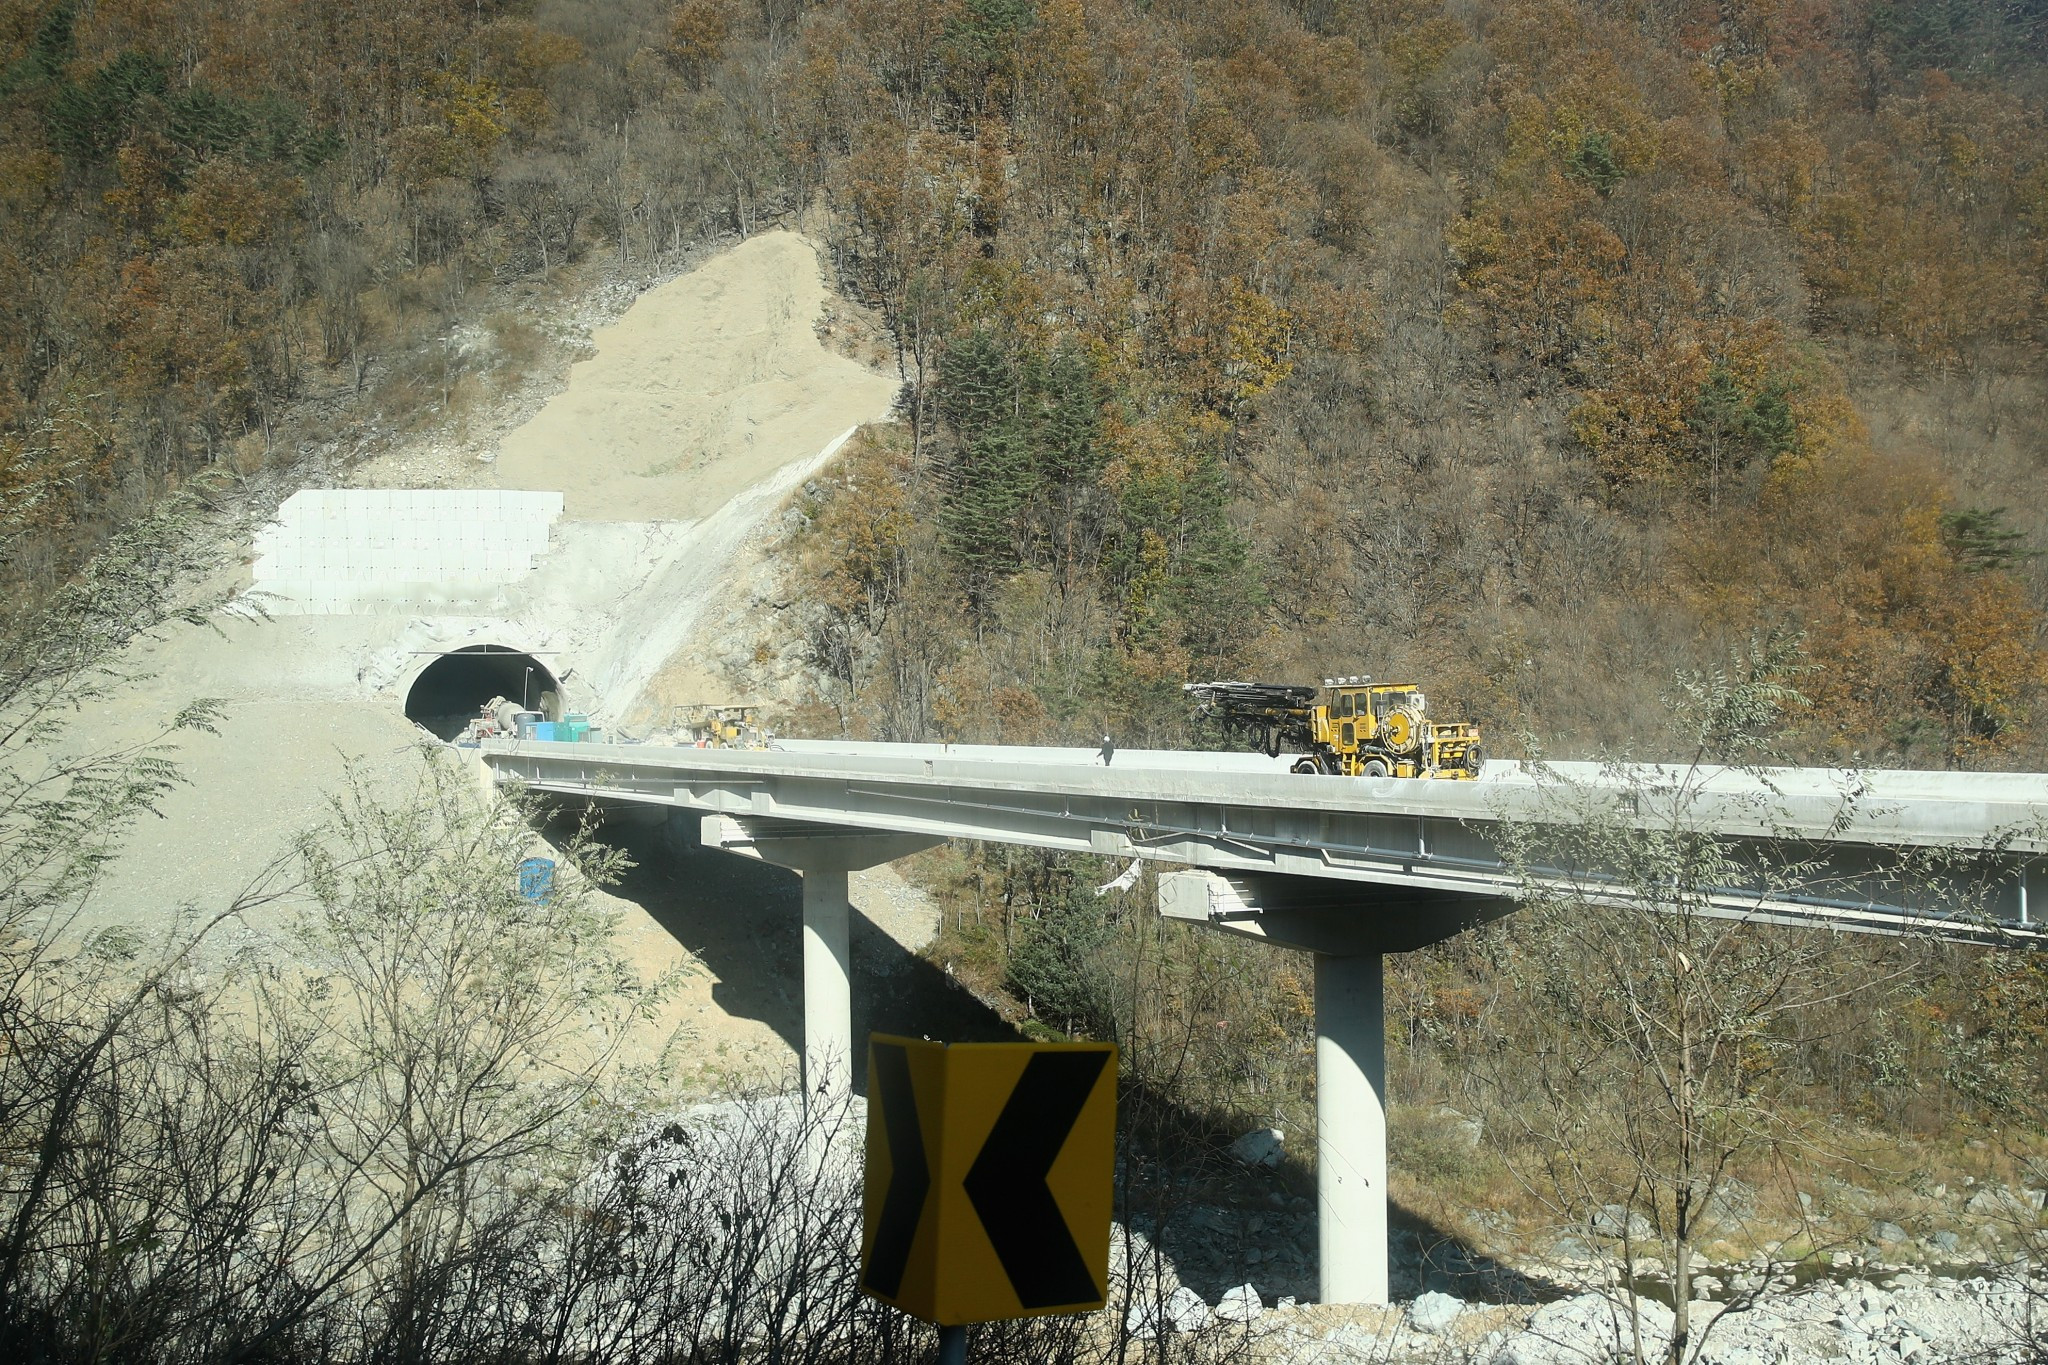 Work on new highways and railroads for Pyeongchang 2018 reaches final stage